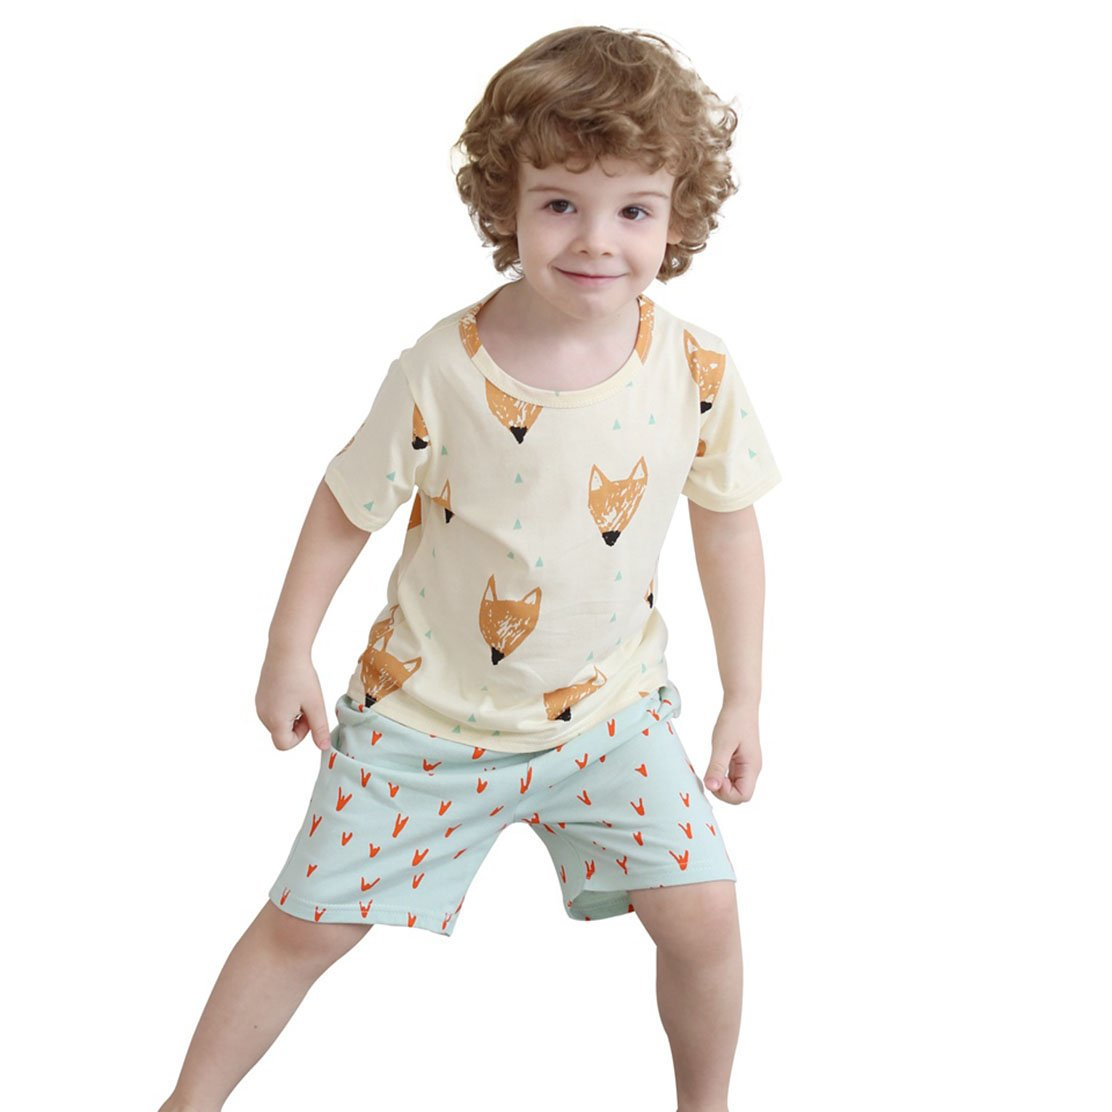 daqinghjxg Summer Children Clothing Set Brand Sport Suits For Boys Toddler Baby Tshirts + Shorts As Picture 6